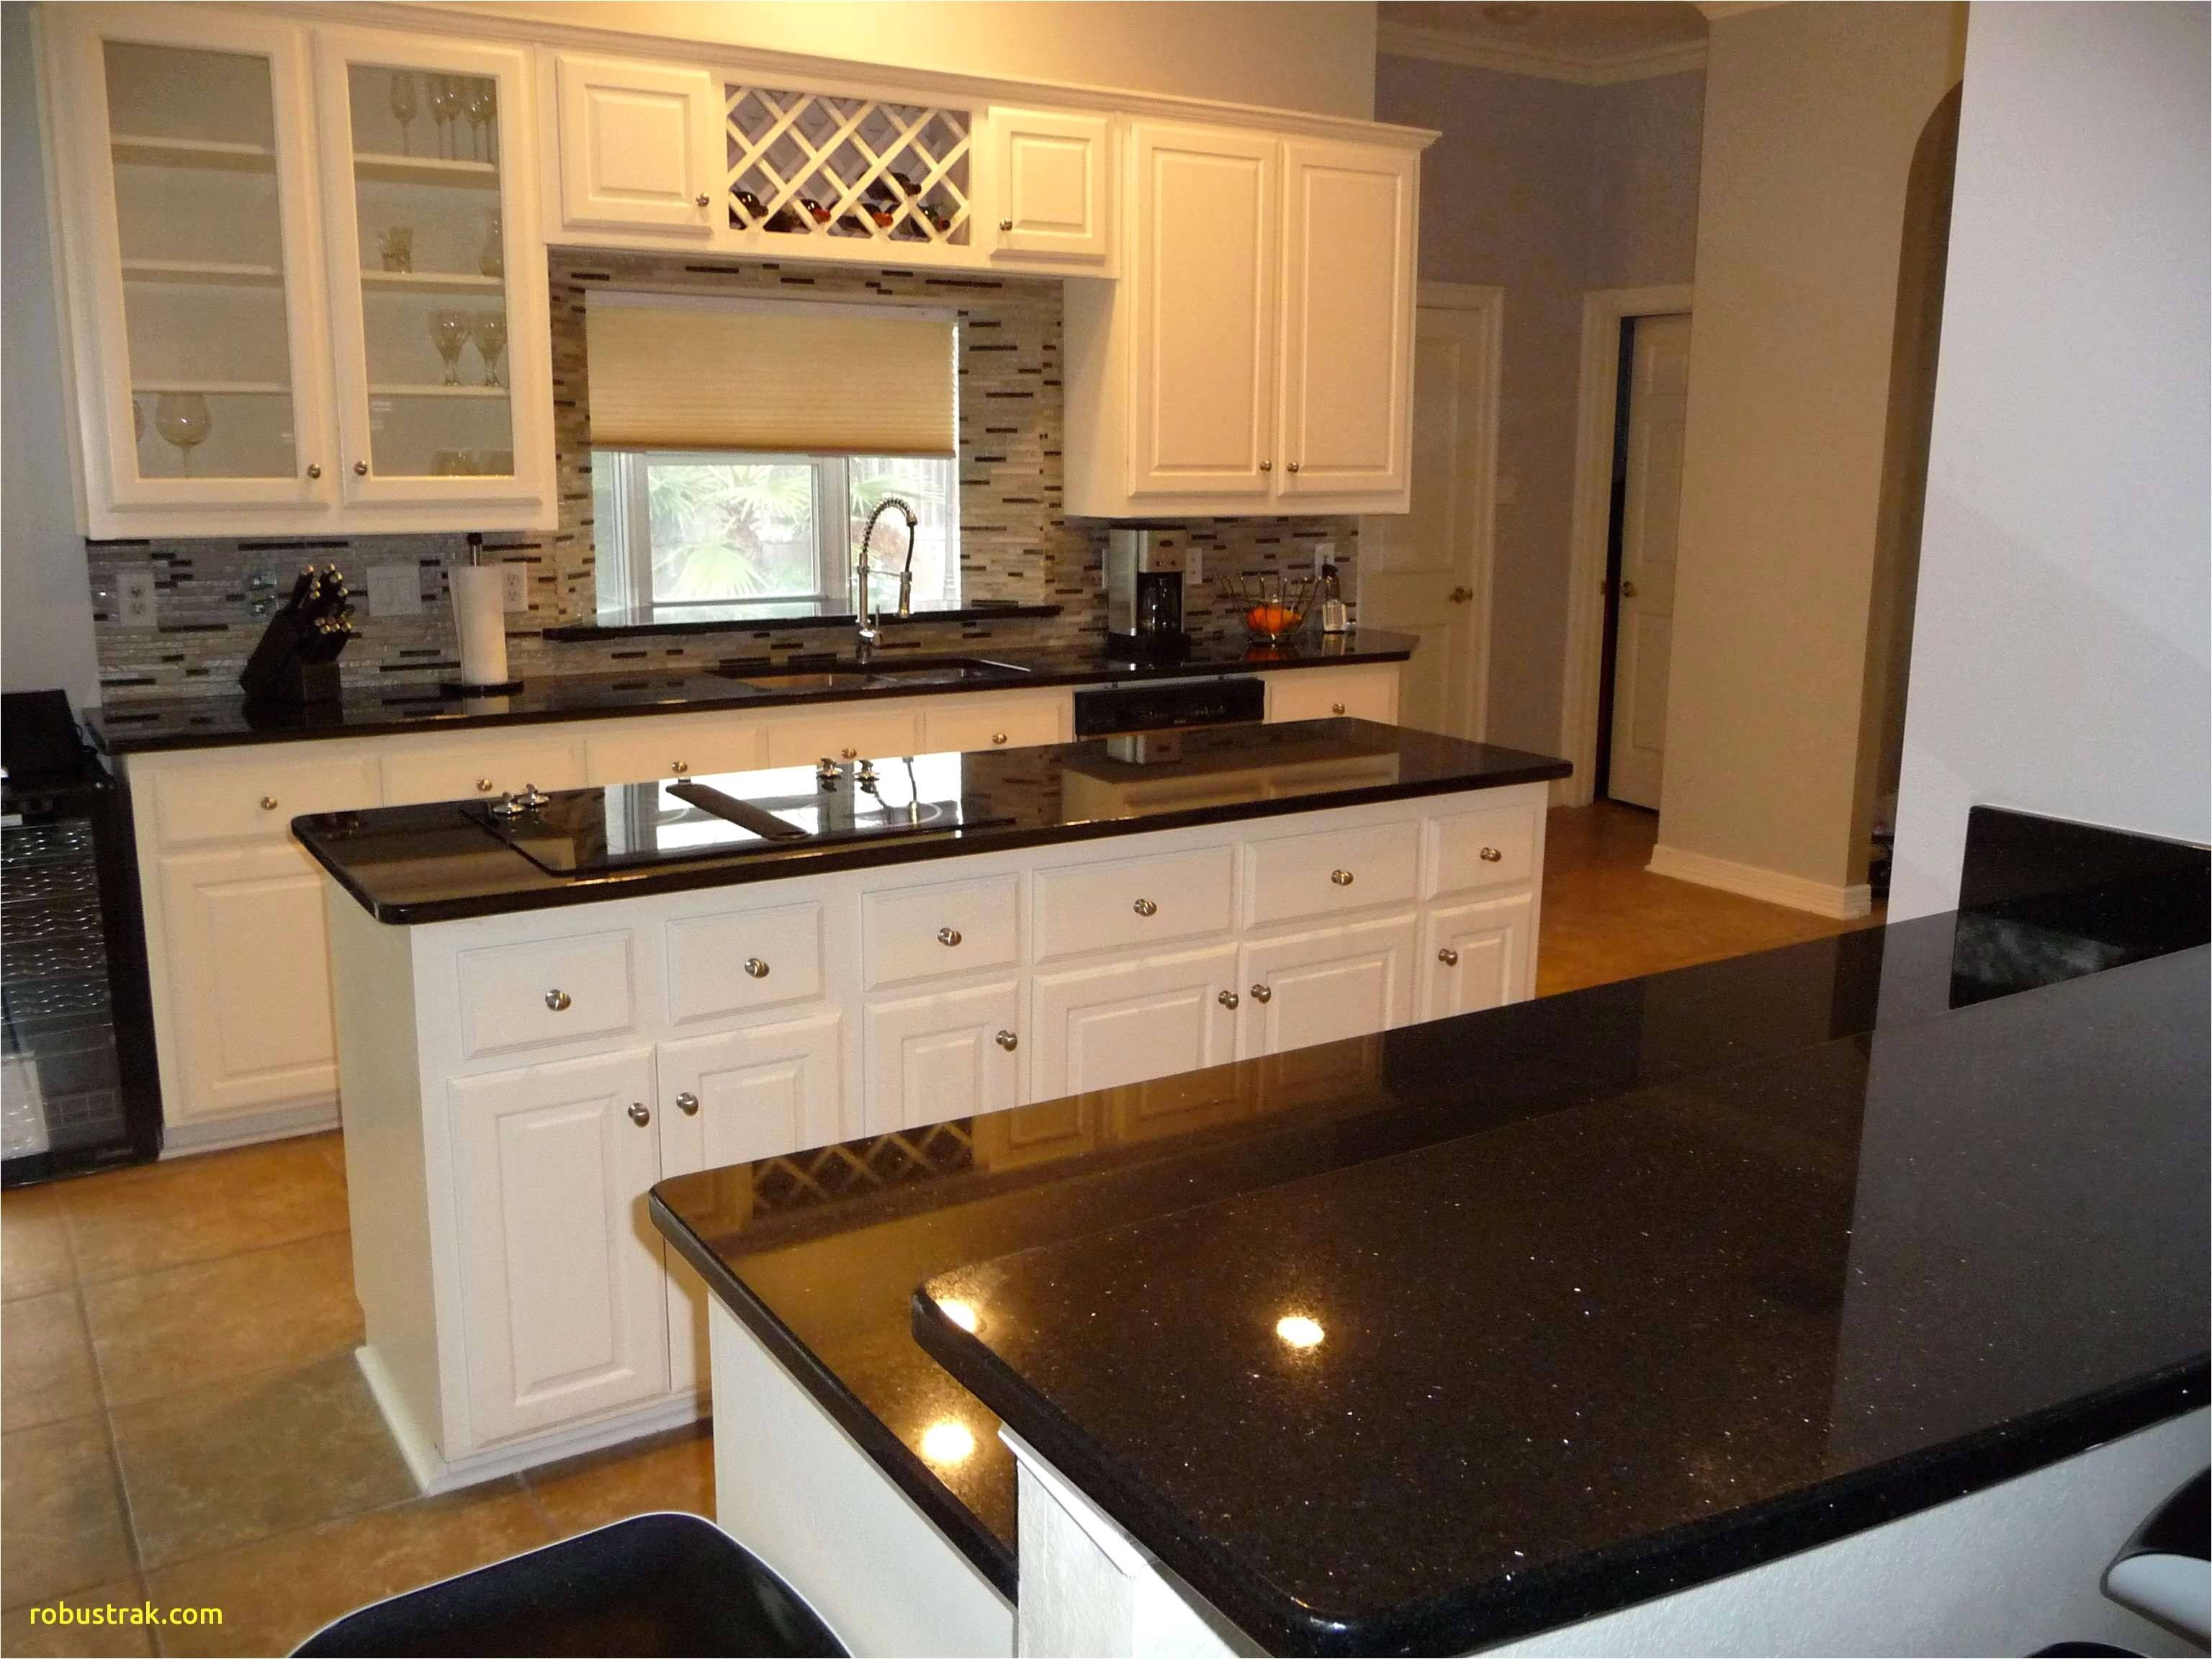 white cabinets granite countertops kitchen 40 rare gray and brown granite countertops coffee table and of white cabinets granite countertops kitchen